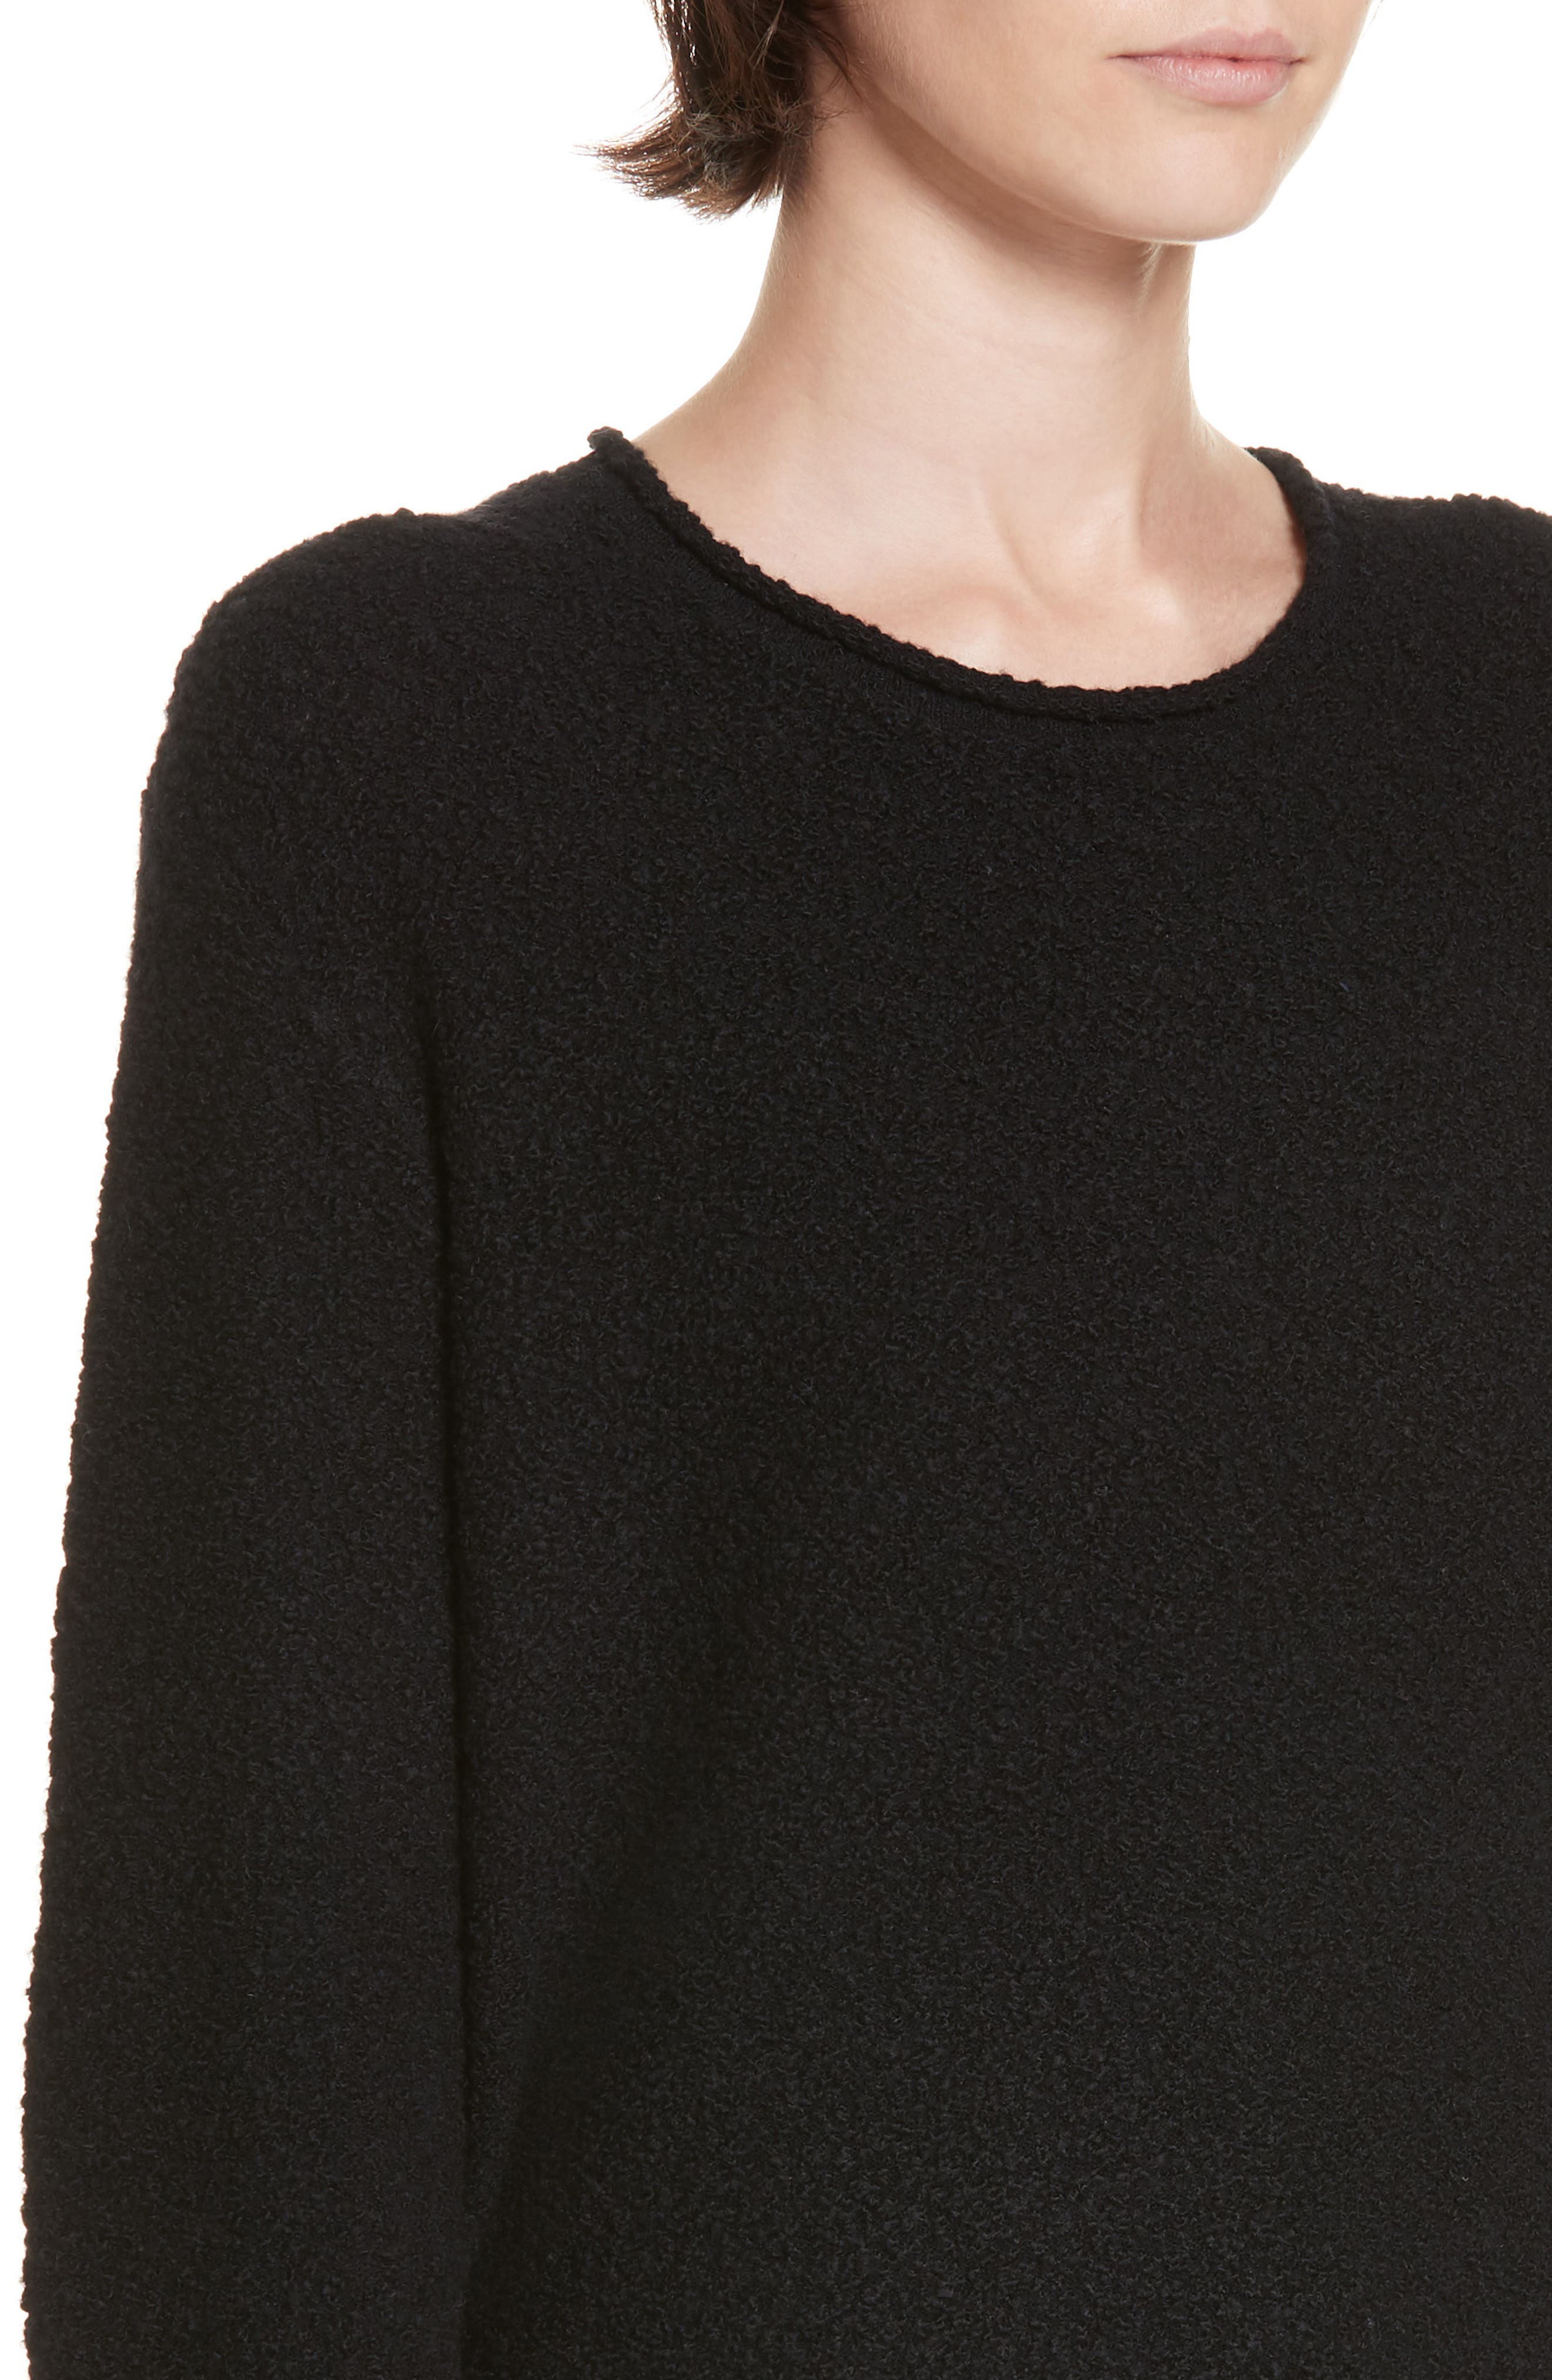 Bouclé Crewneck Sweater,                             Alternate thumbnail 4, color,                             BLACK